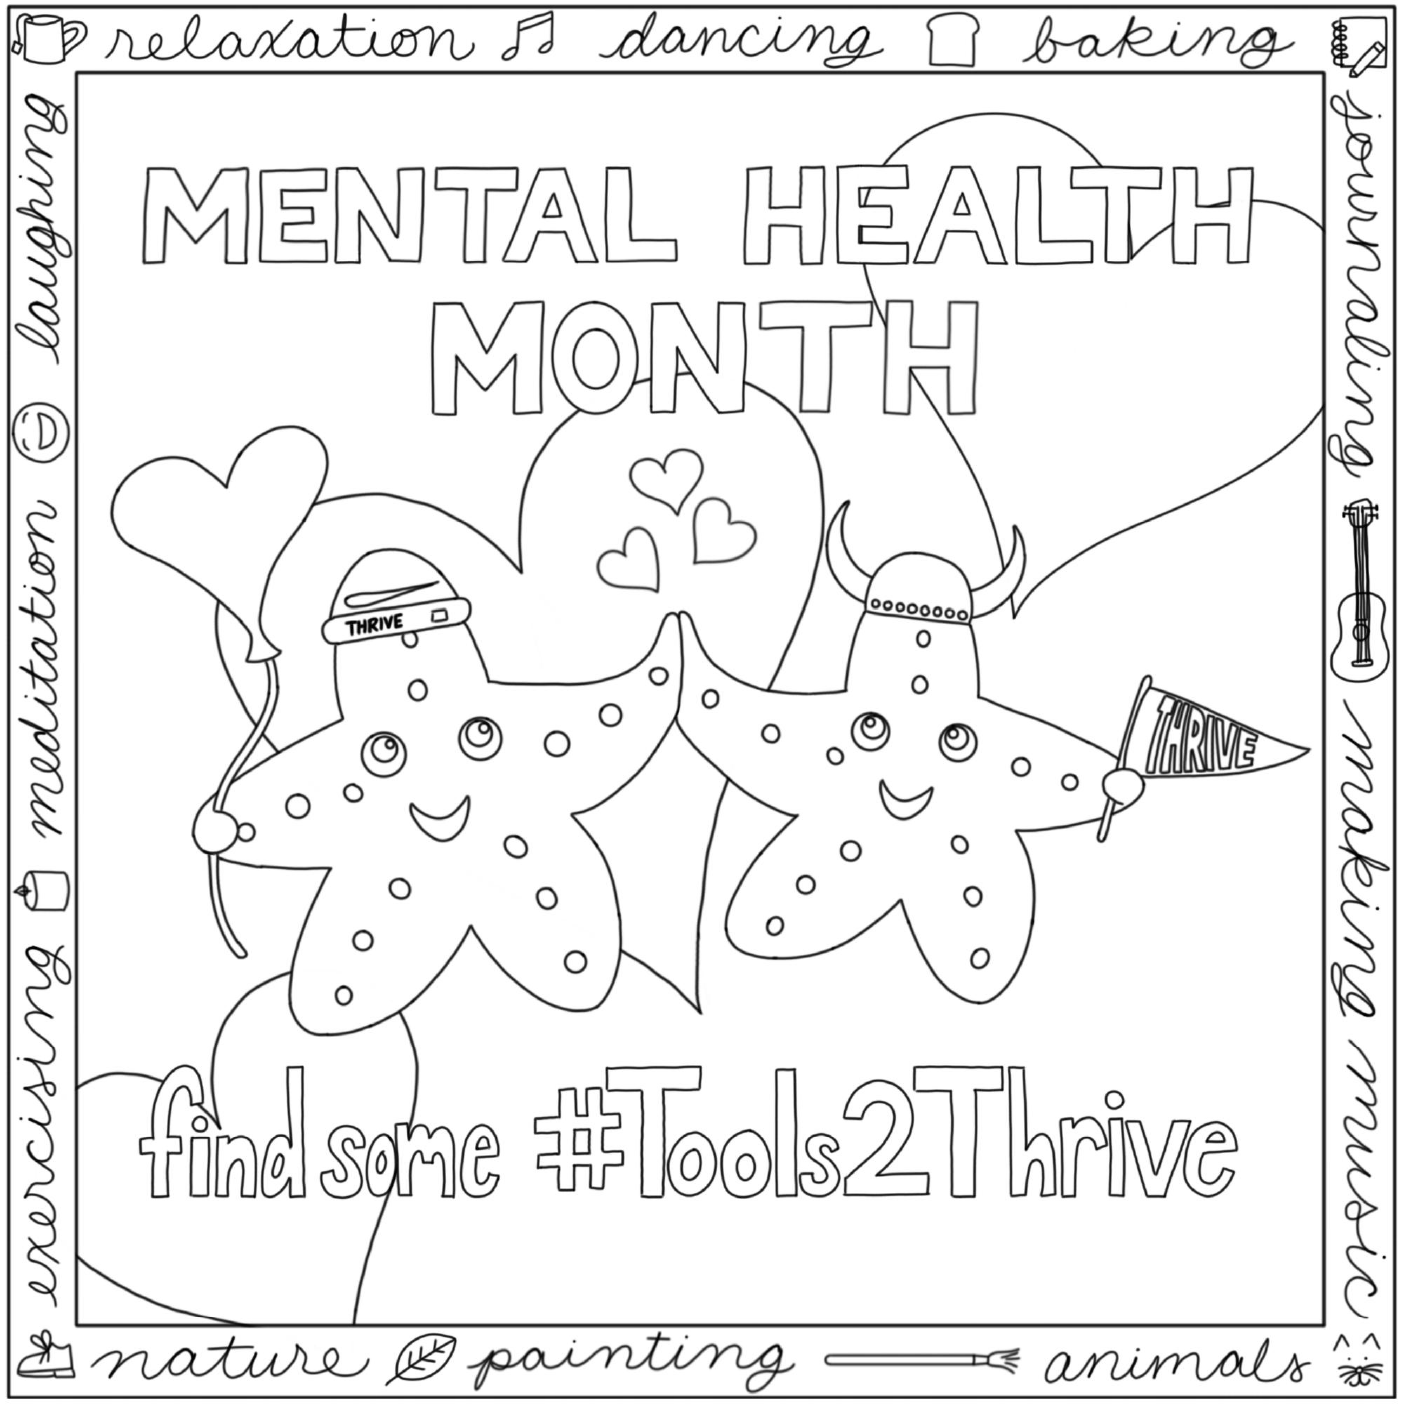 Two smiling cartoon starfish touching hands and surrounded by hearts and the words Mental Health Month